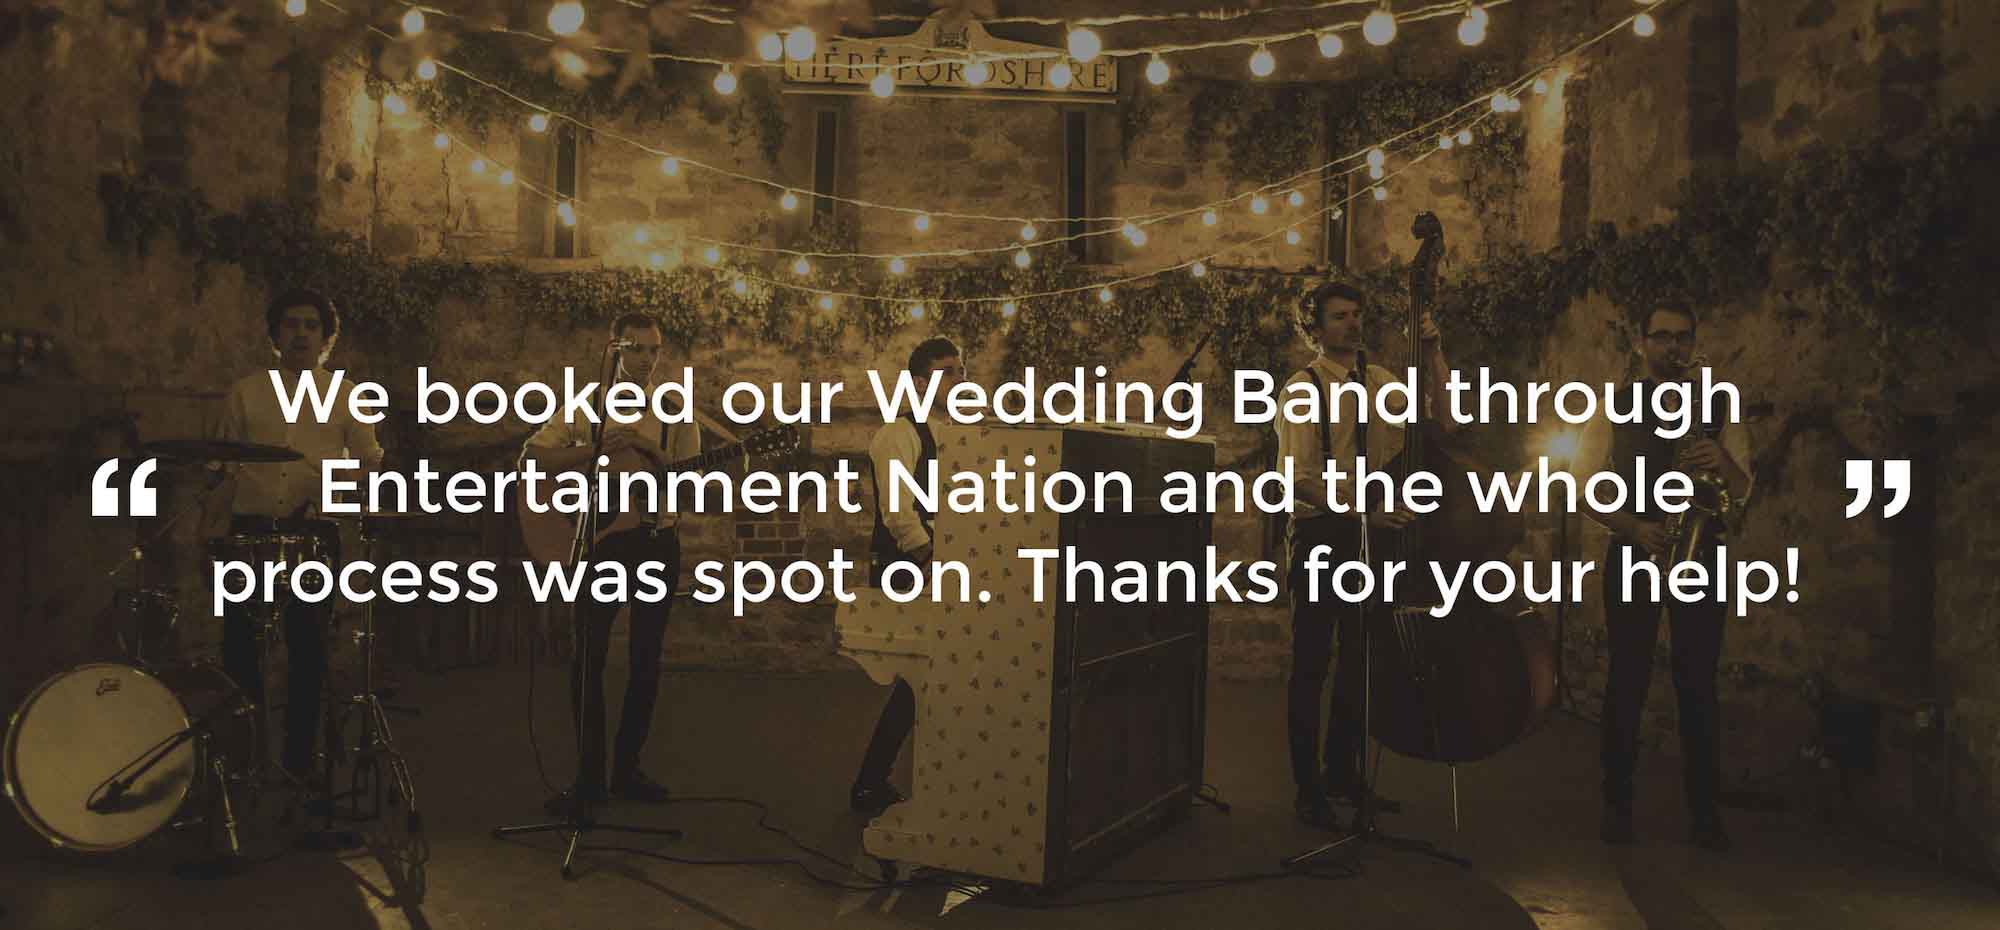 Client Review of a Wedding Band Surrey